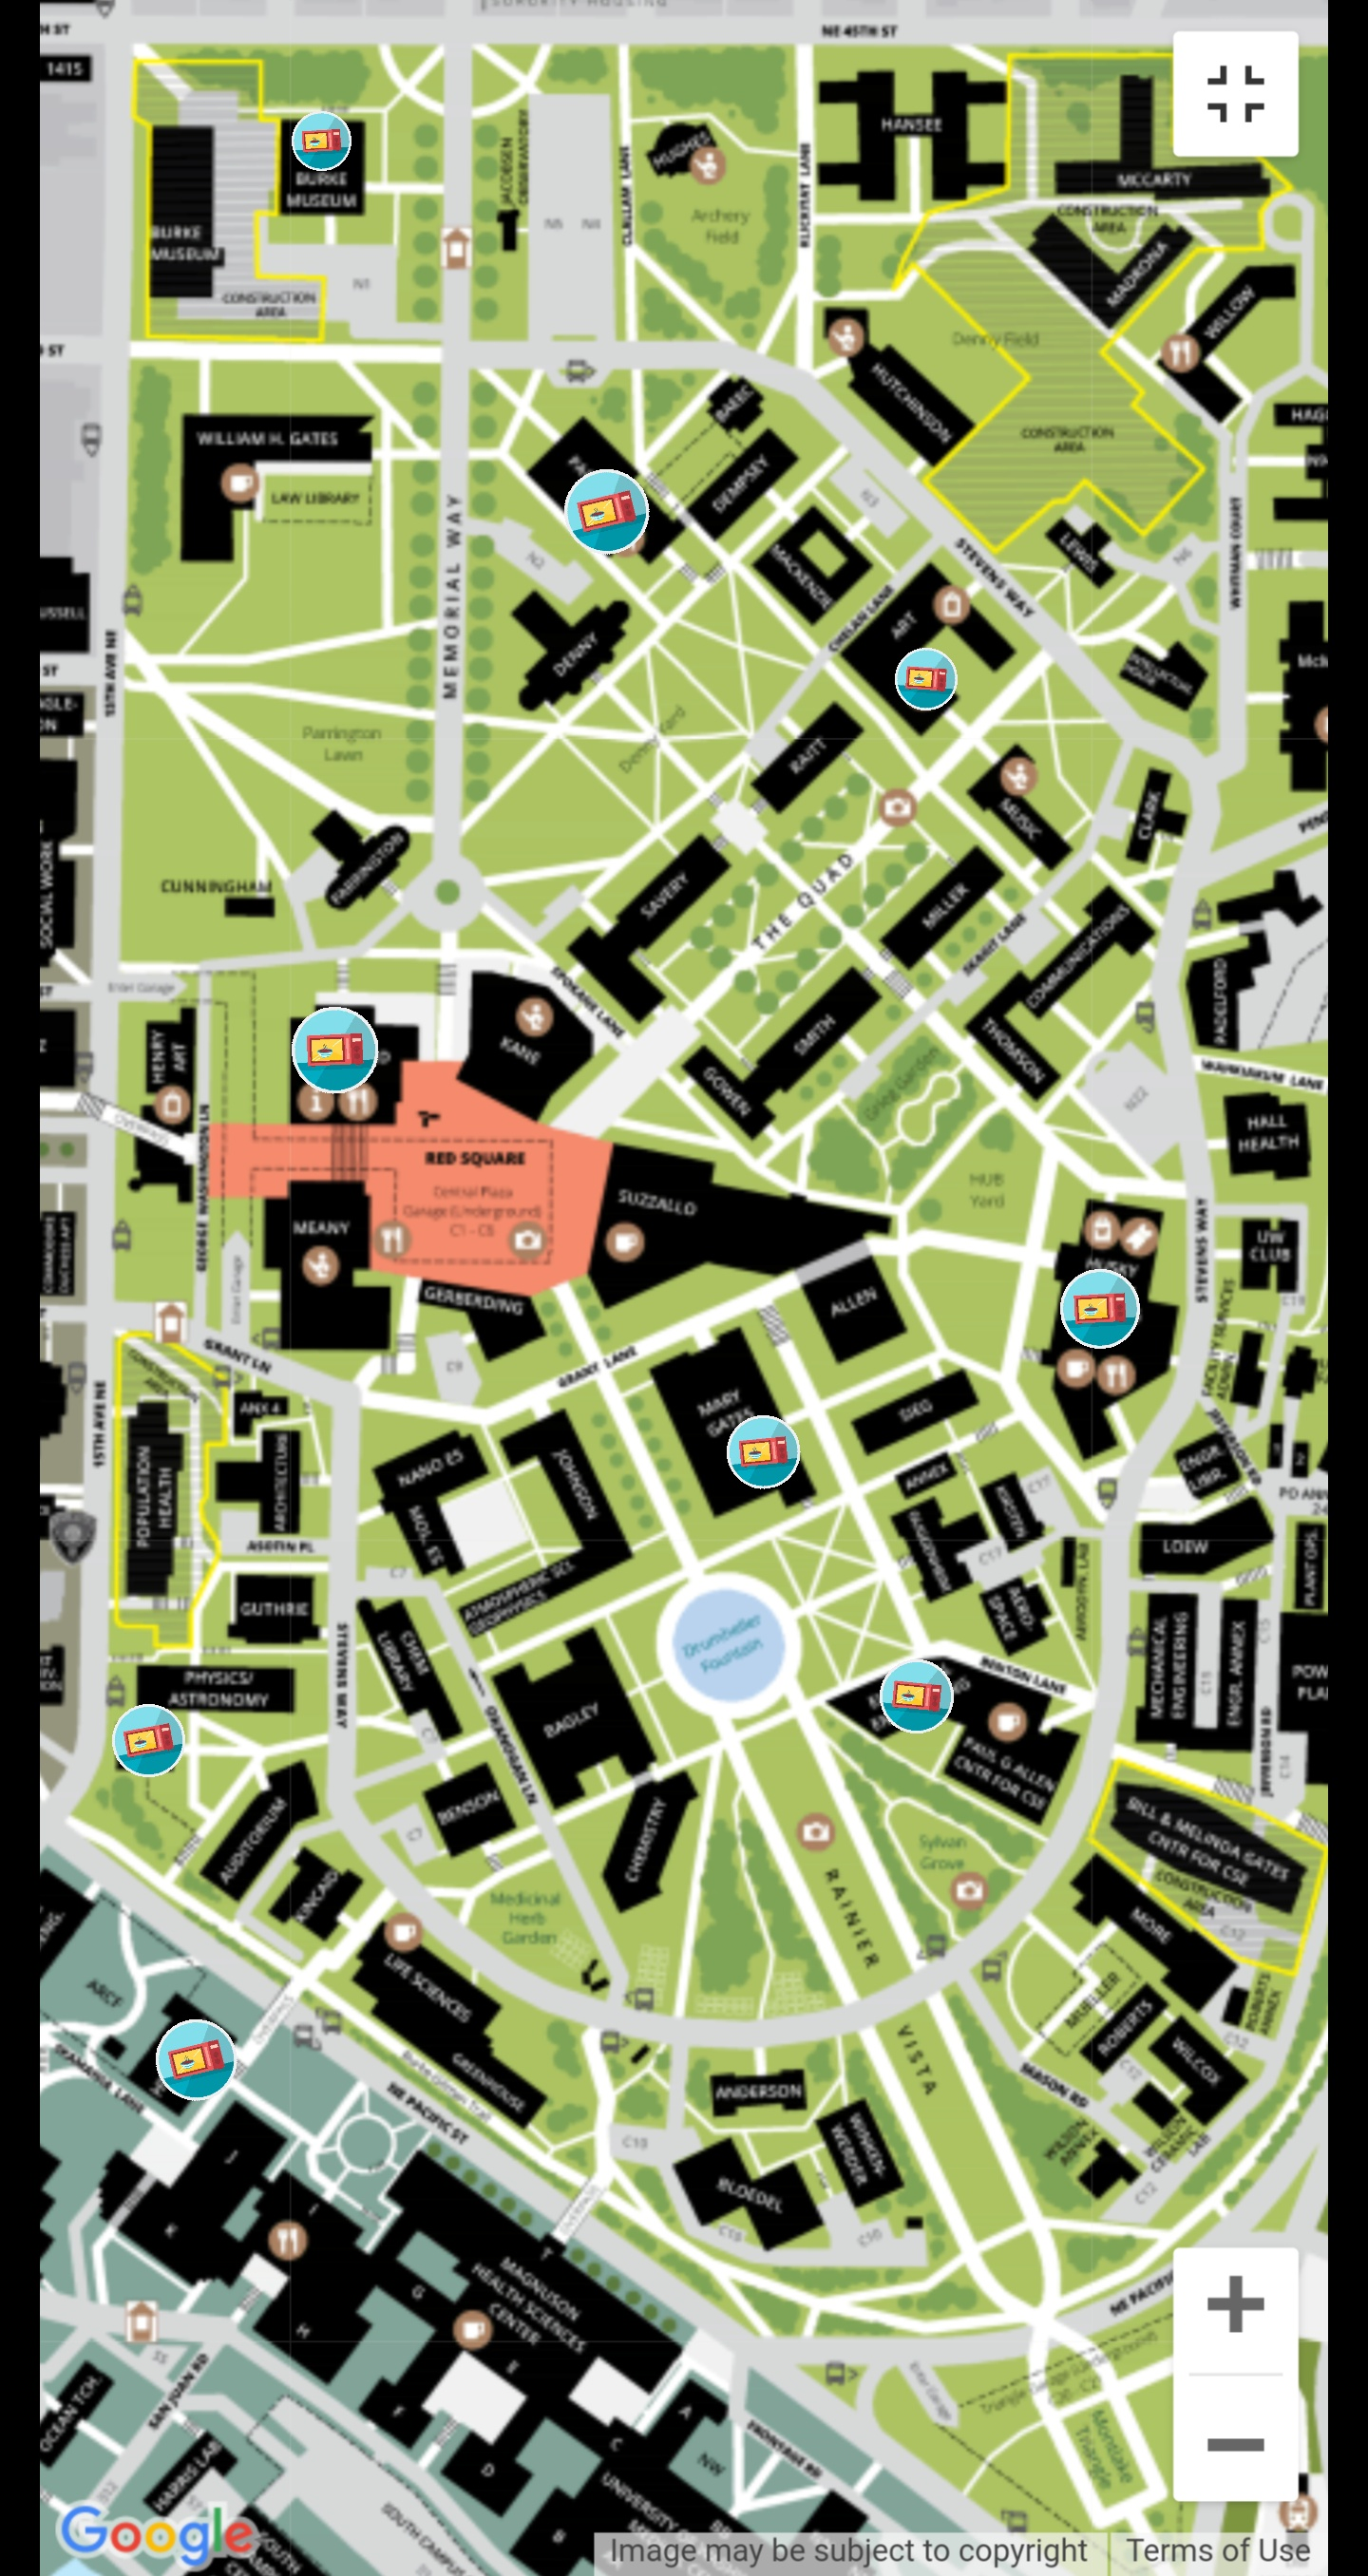 Uw Seattle Campus Map : seattle, campus, Microwaves, Campus, Mentioned, Previous, Threads.